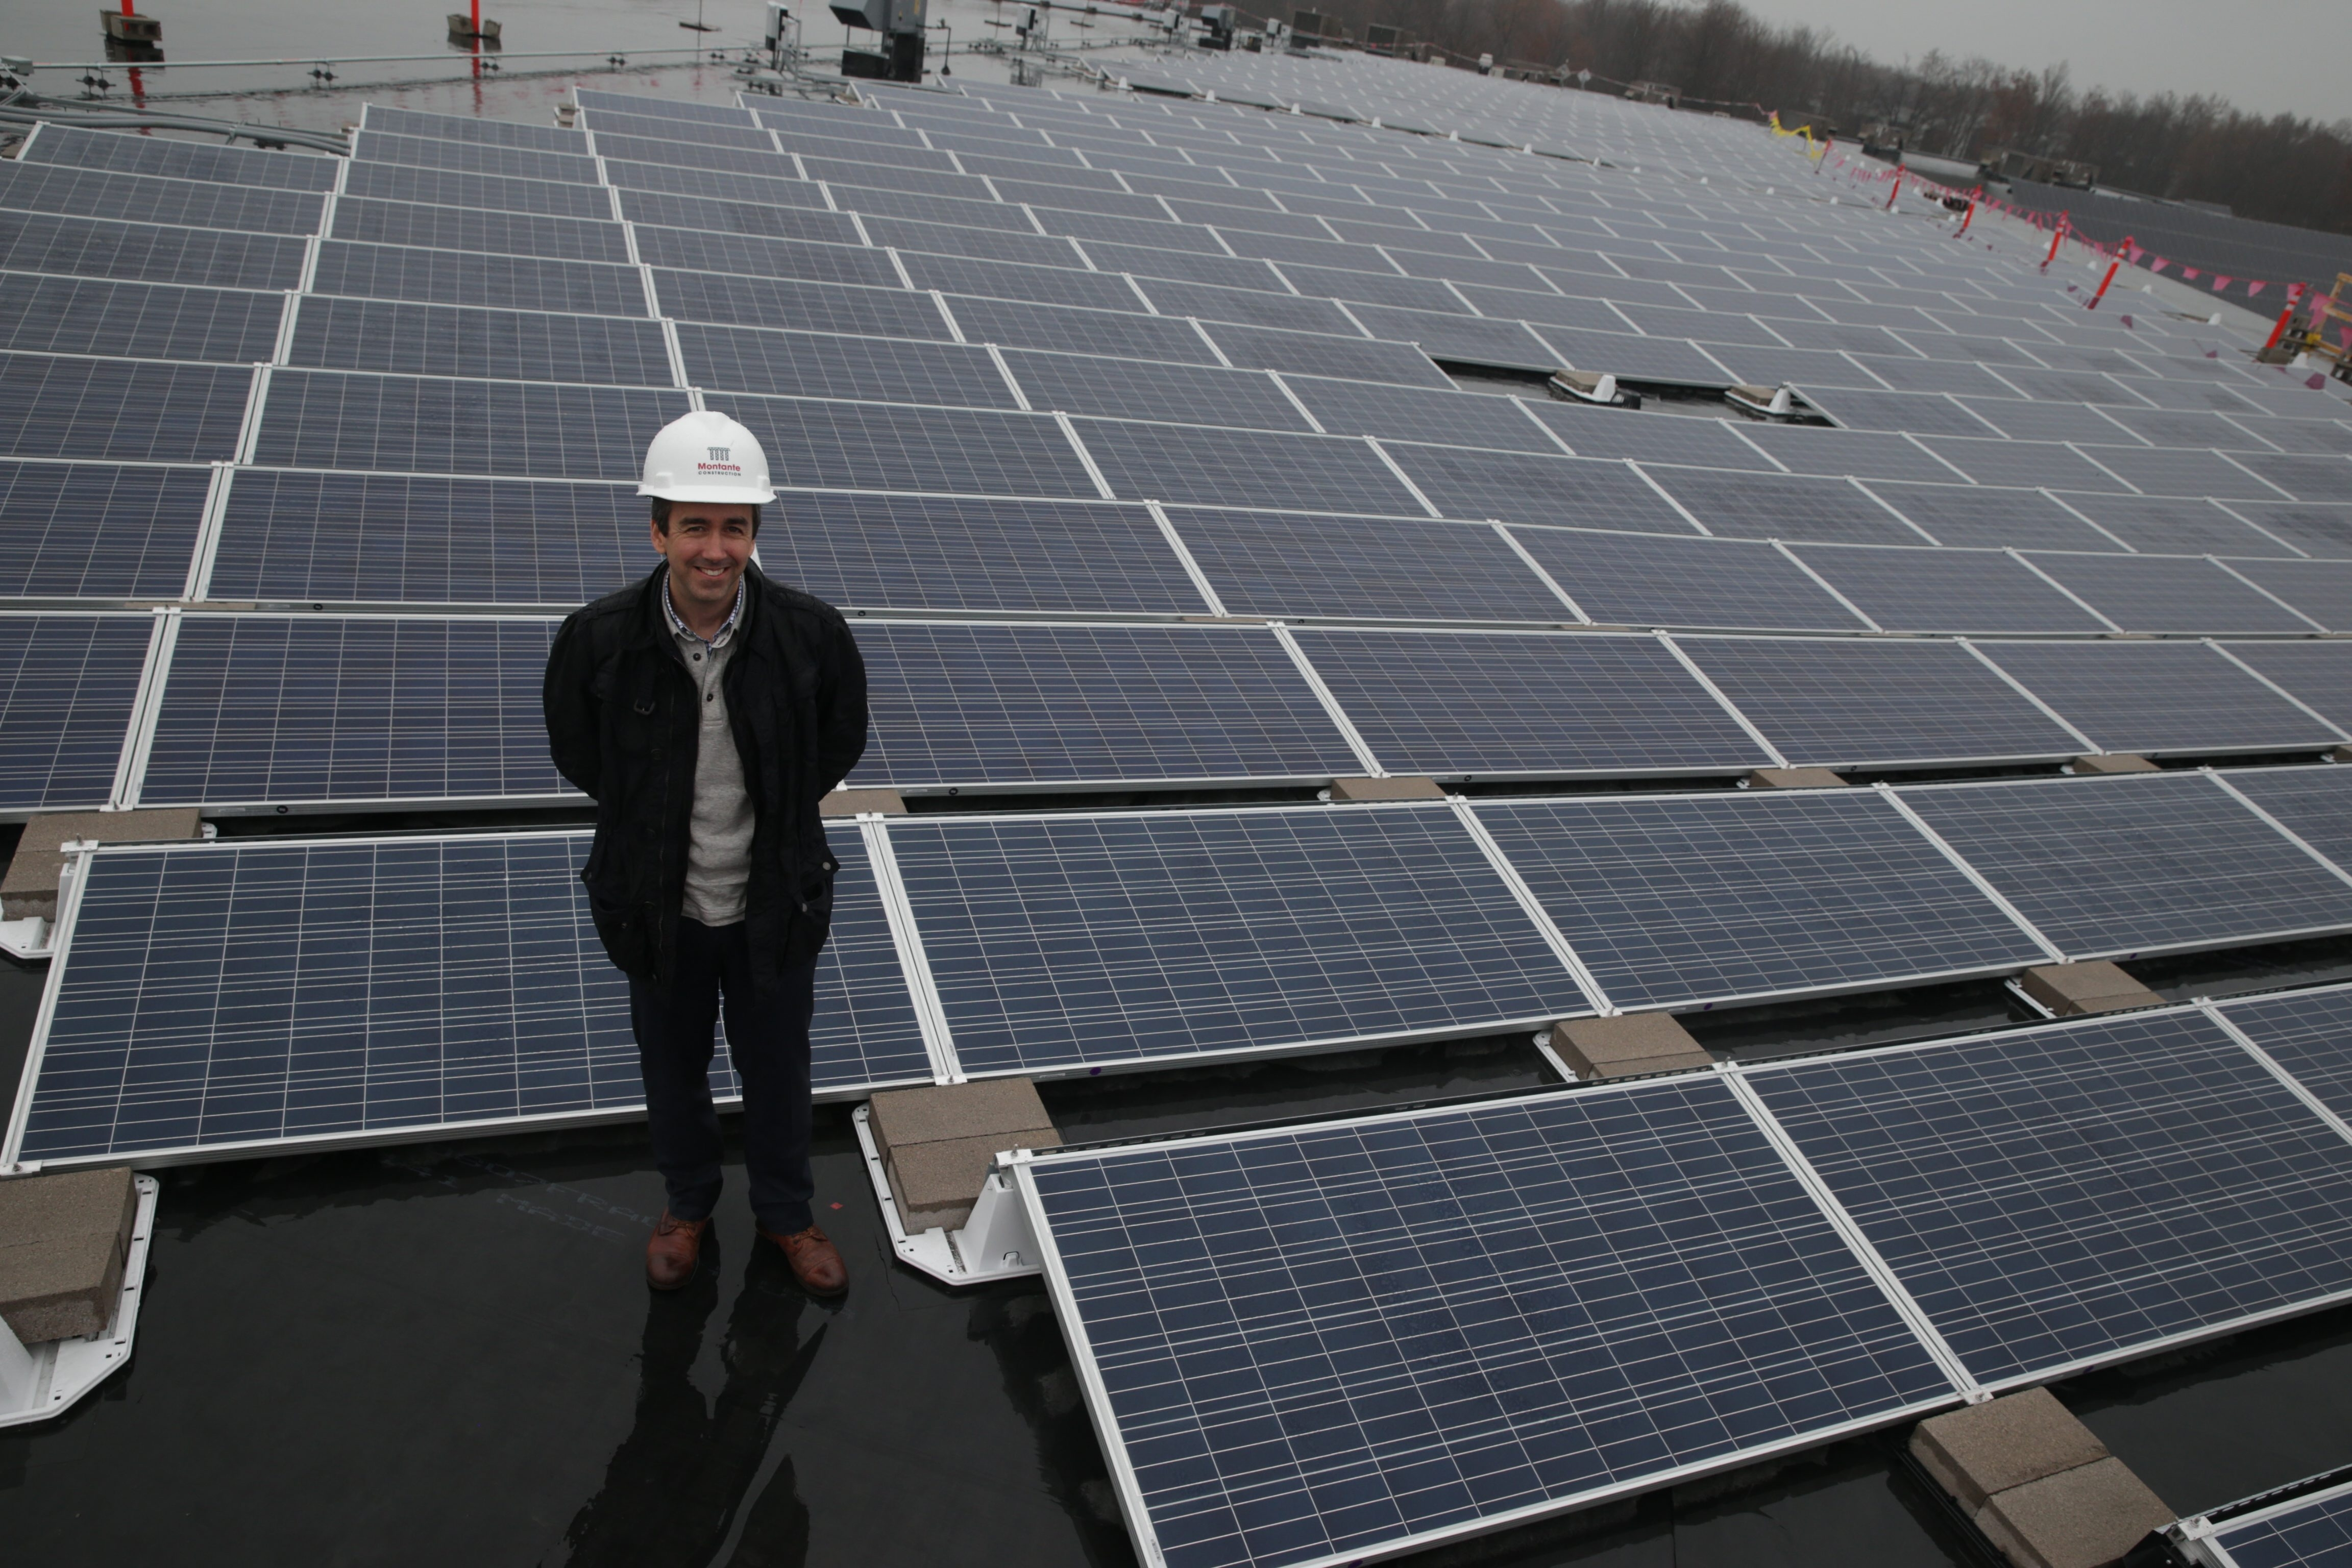 Daniel Montante is President and co-founder of Montante Solar at the FedEx distribution center's solar array  on Tuesday,  Nov. 10, 2015  in Town of Tonawanda, N.Y.(John Hickey/Buffalo News)